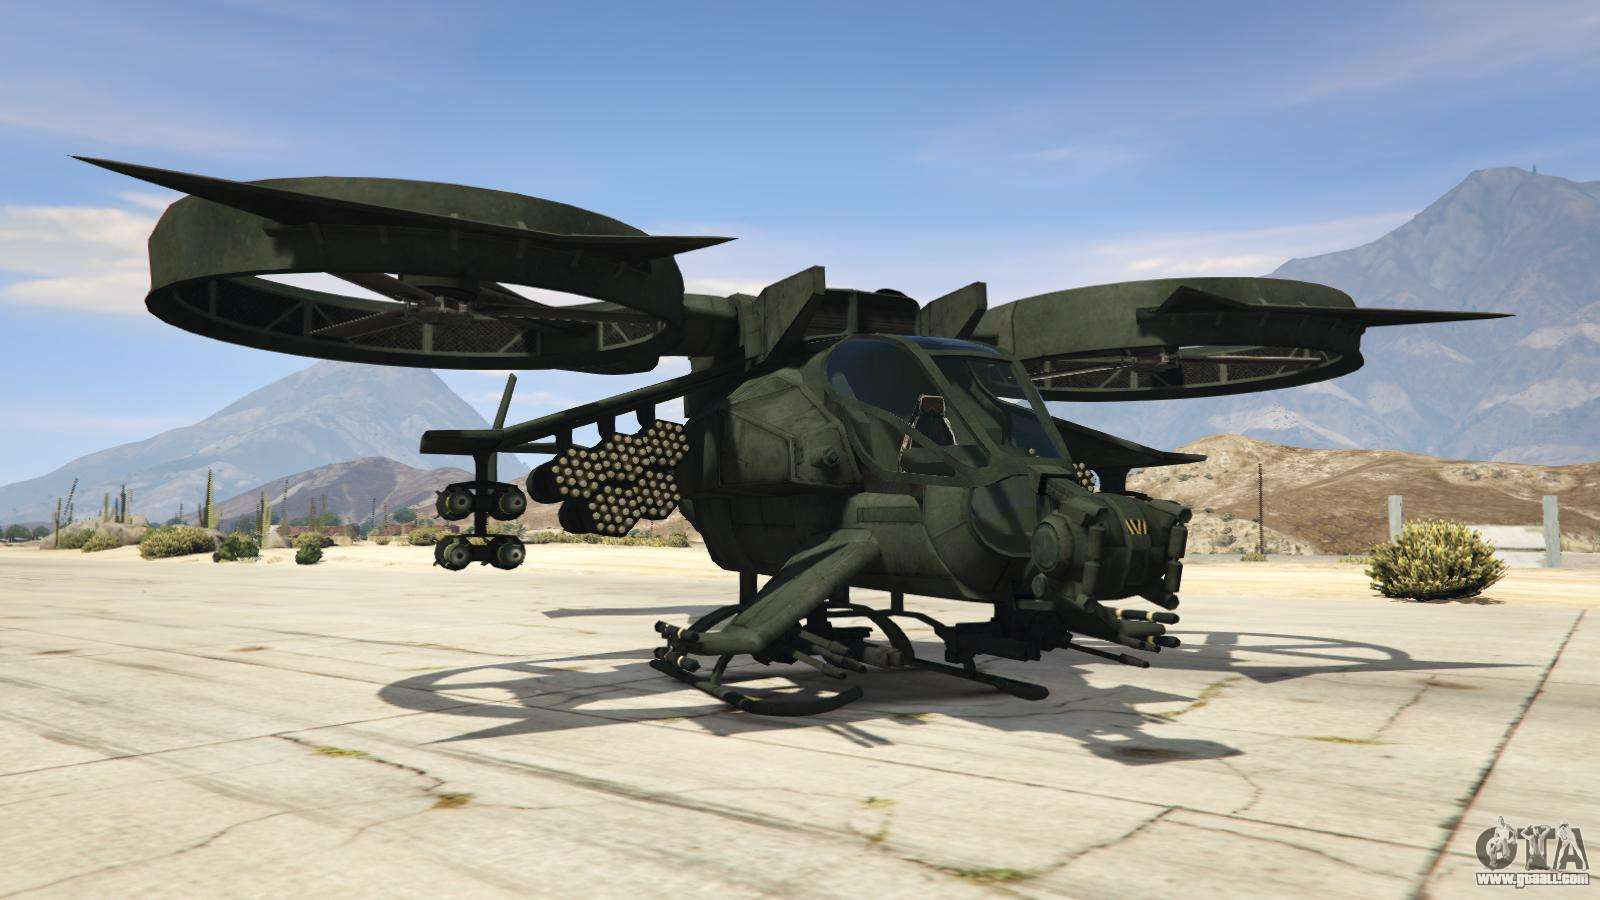 helicopter gta cheat with 75769 At 99 Scorpion on Watch together with B00CF354UG moreover Necrocraft Modded Survival Series Modded Read Desc For Mods as well 75769 At 99 Scorpion in addition Gtav Secrets Pt 2.